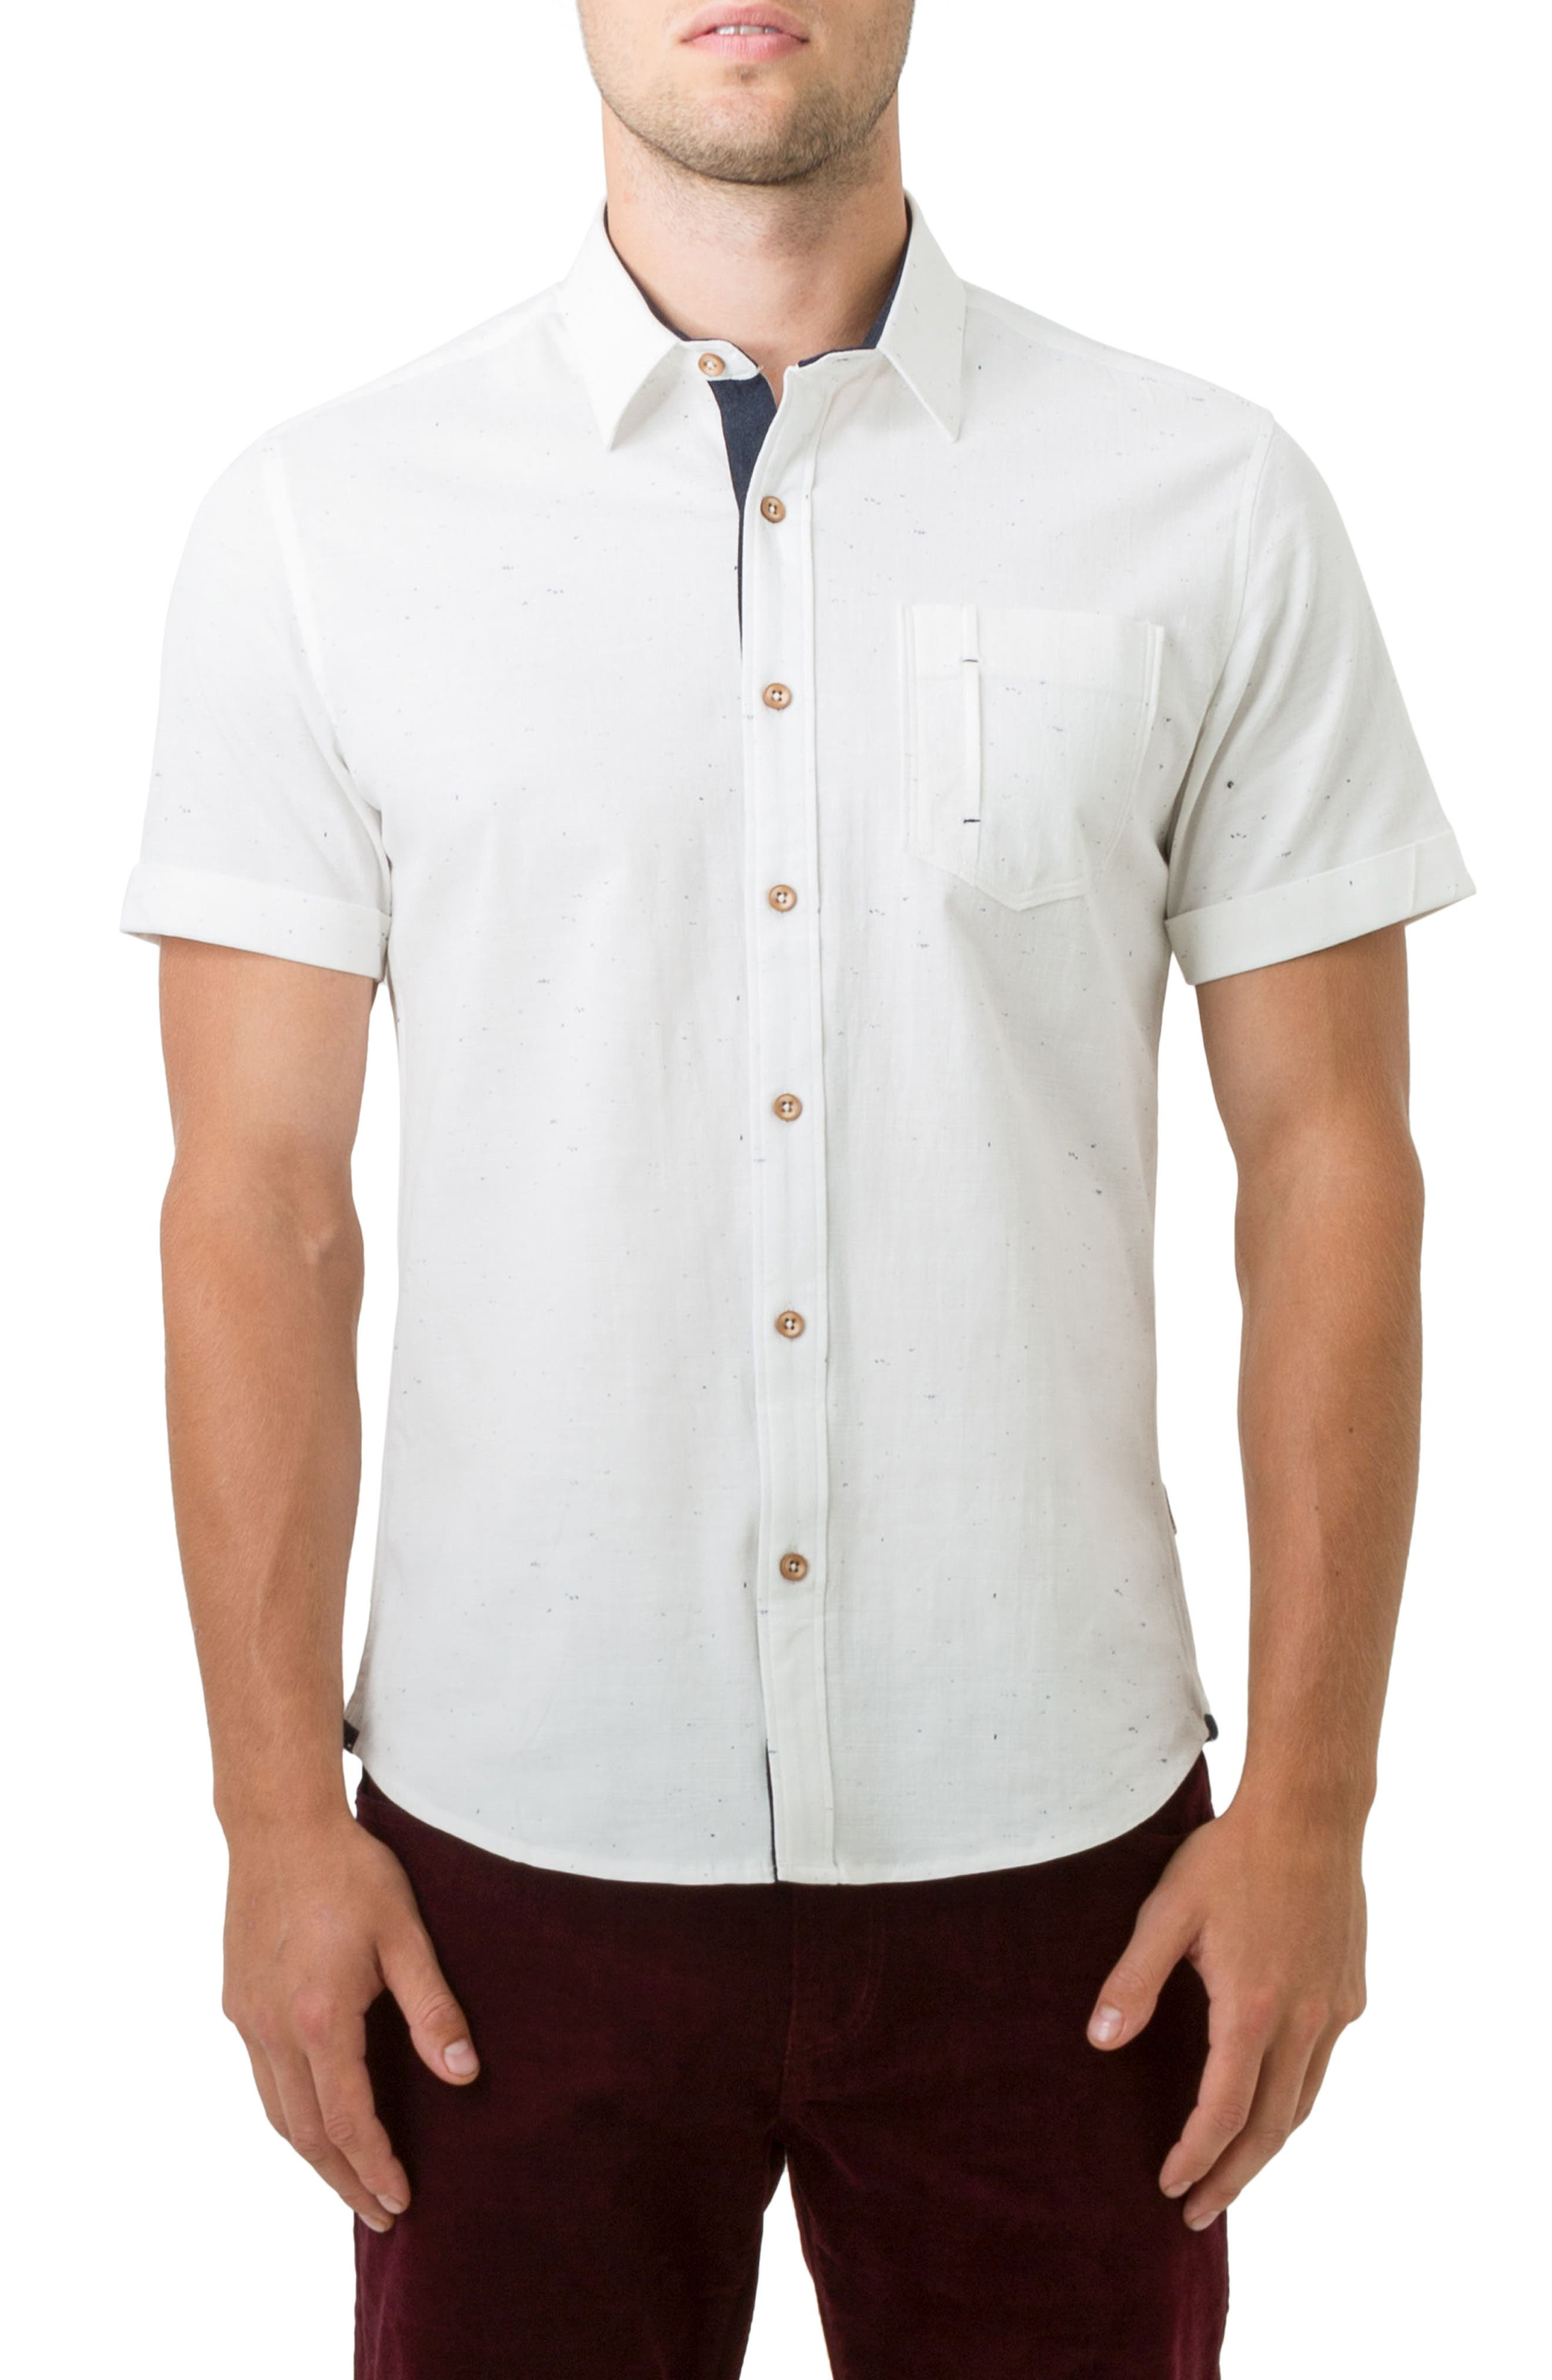 7 Diamonds Mystic Traveler Woven Shirt